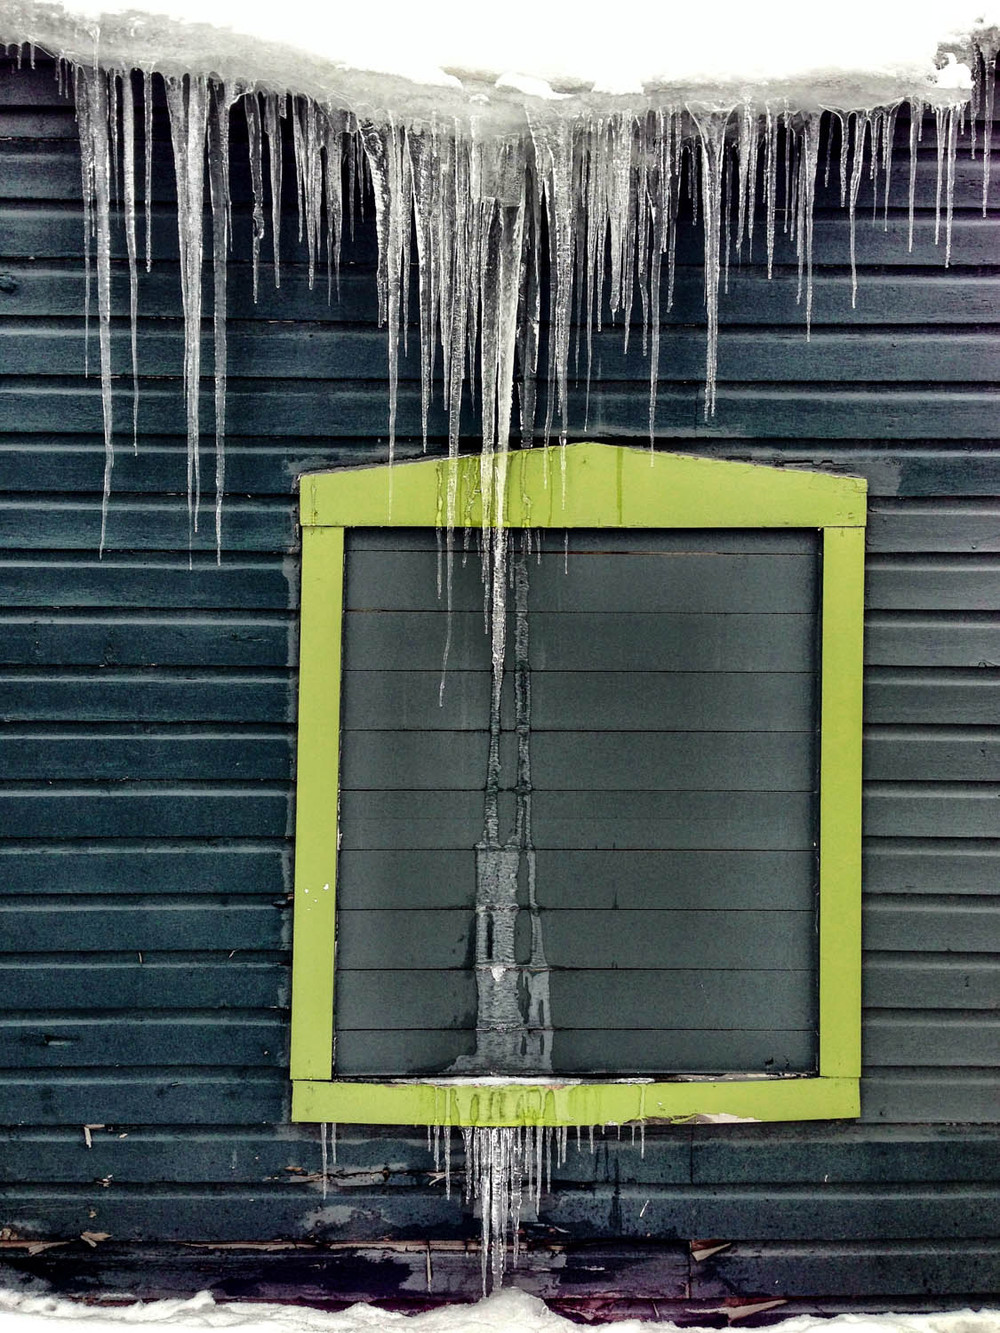 Here is a great example of the icicles that were present on the side of so many of the rooftops. I also really enjoy the contrast of color between the wall and the faux window frame.